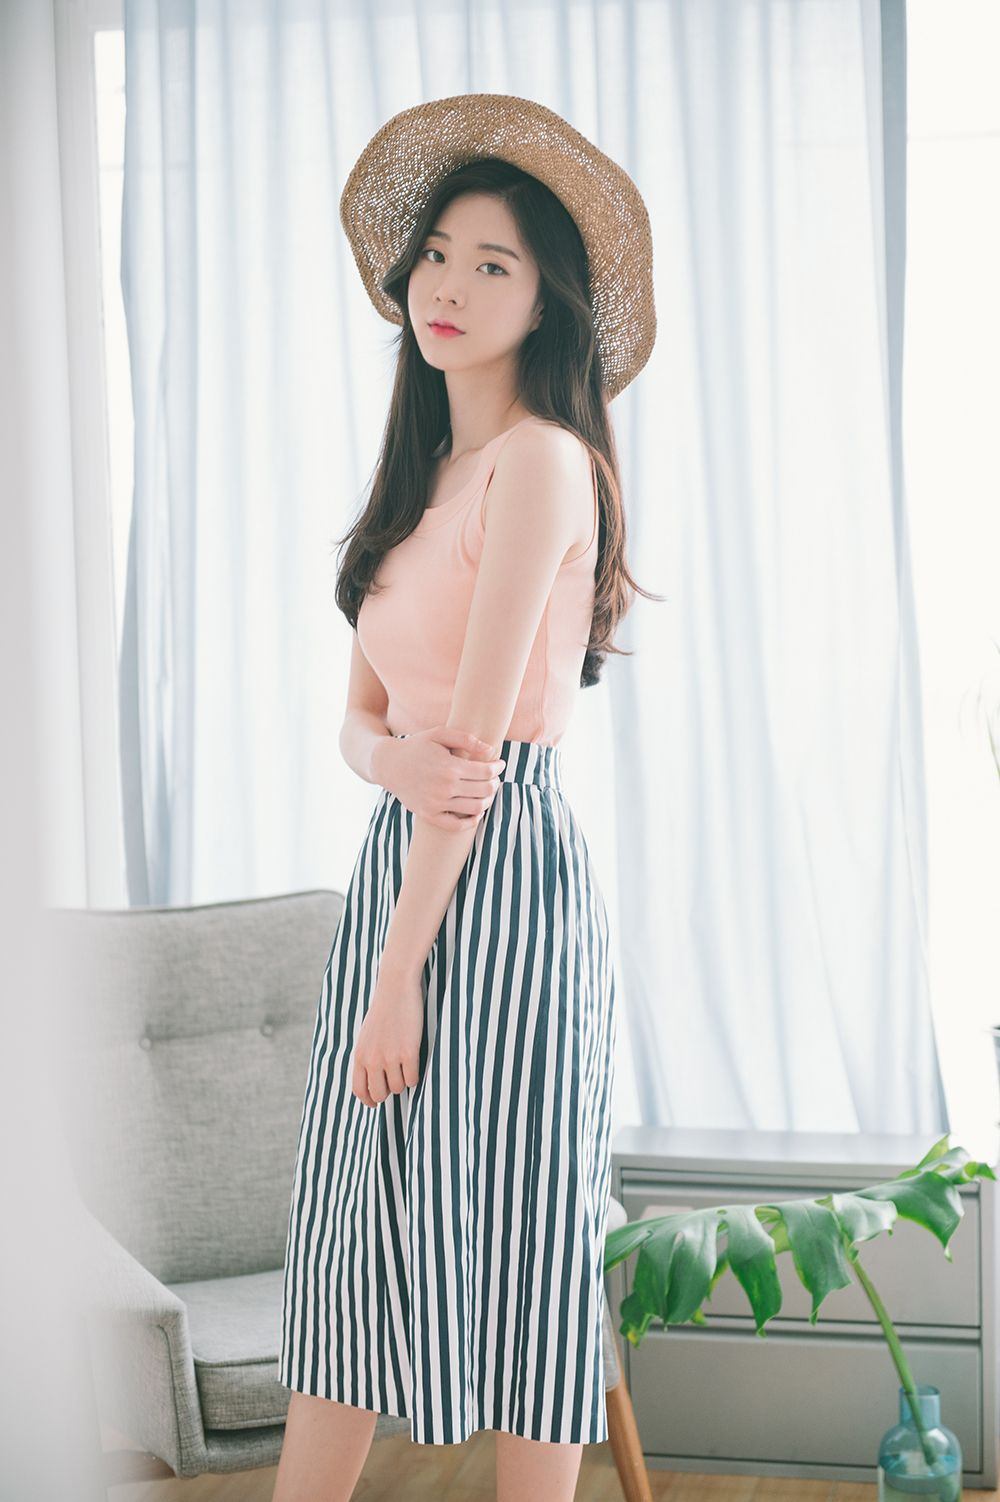 #mixxmix BAHAUS High-Waisted Striped Midi Skirt (CAHE) This gorgeous midi skirt comes with a striped print for an eye-catching look. #mxm #hideandseek #has #365basic #bauhaus #99bunny #heartclub #younggirlsfashion #koreanfashiontrend #streetfashion #dailyoutfit #koreanfashionstore #twinlook #twinslook #sisterlook